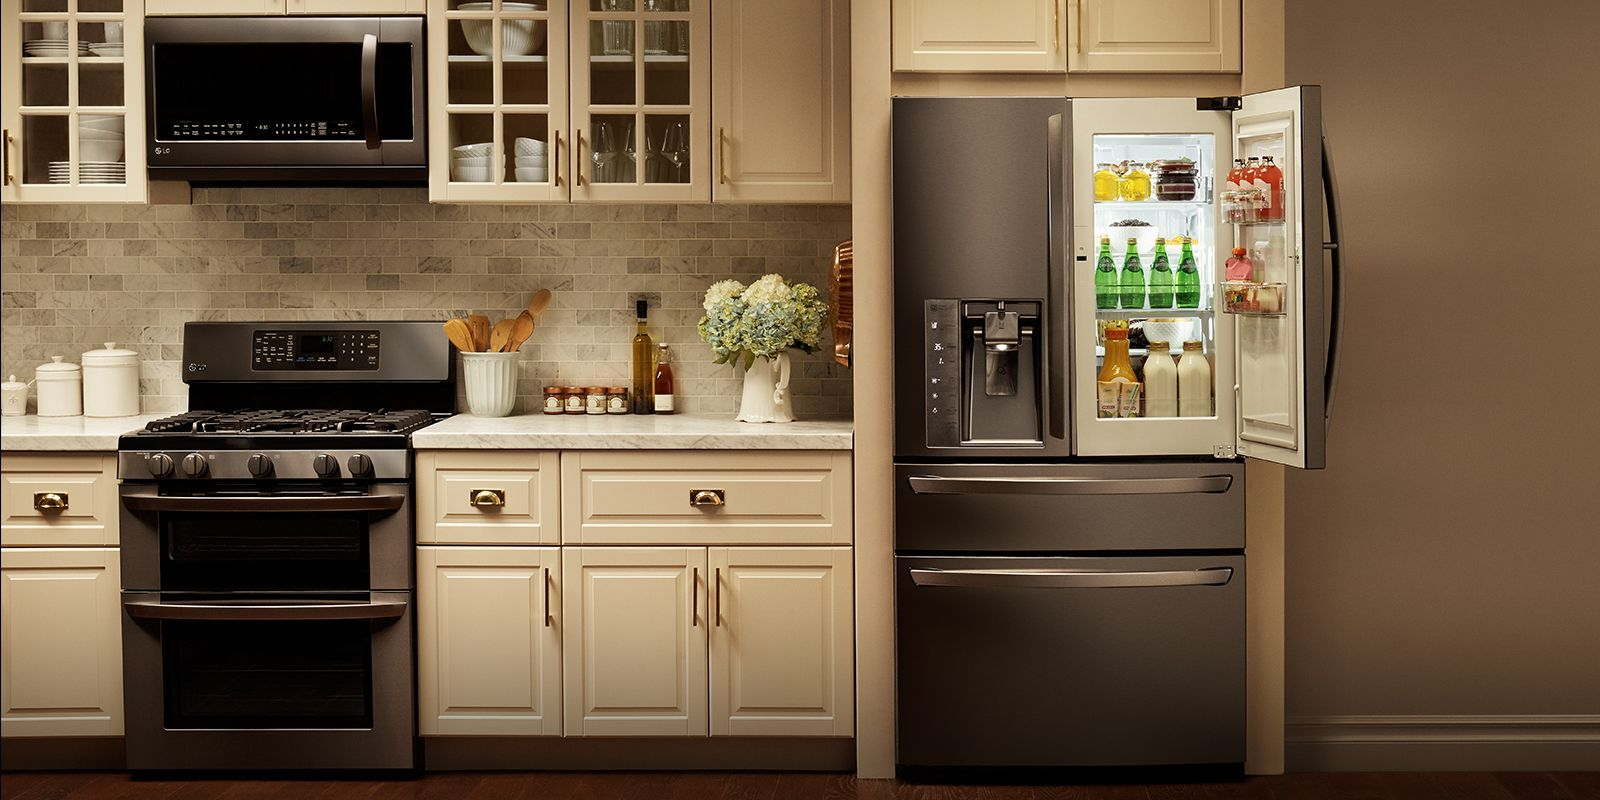 New Kraftmaid Cabinets In Kitchen In 2020 Black Stainless Steel Appliances Kitchen Cabinets With Black Appliances Stainless Steel Kitchen Interior